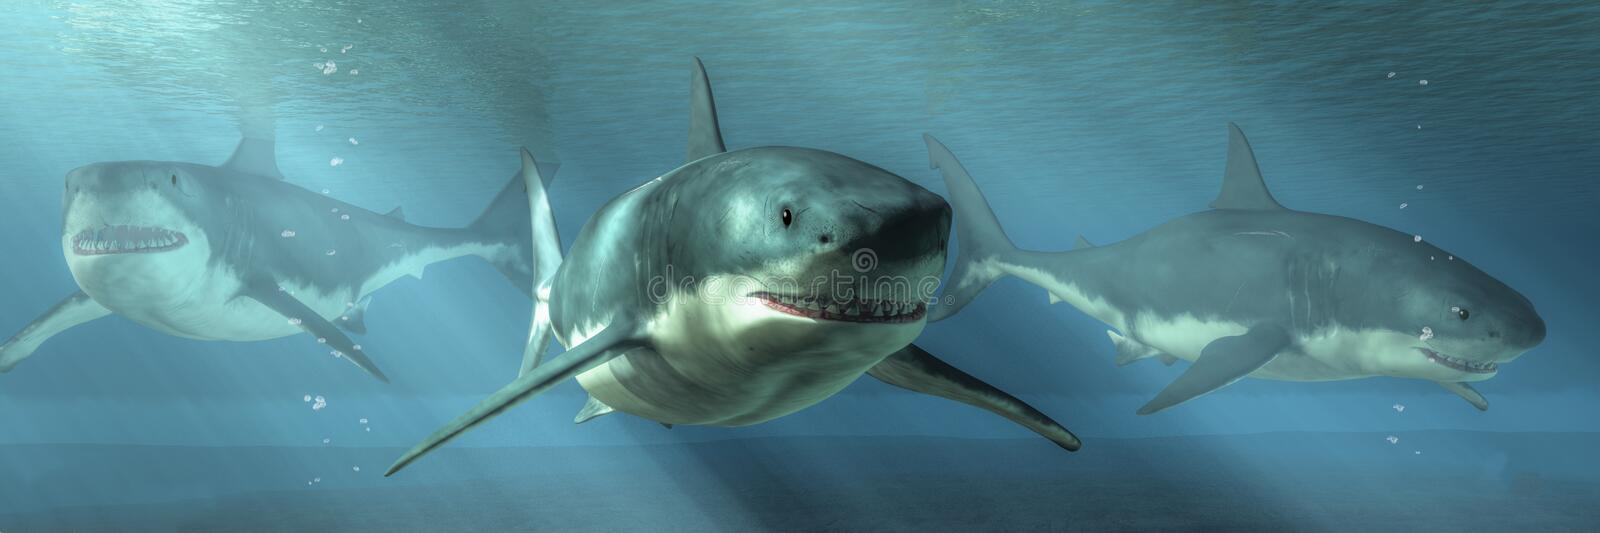 Three Great White Sharks. Swim towards you out of the depths. The predators are the rulers of their undersea kingdom royalty free illustration